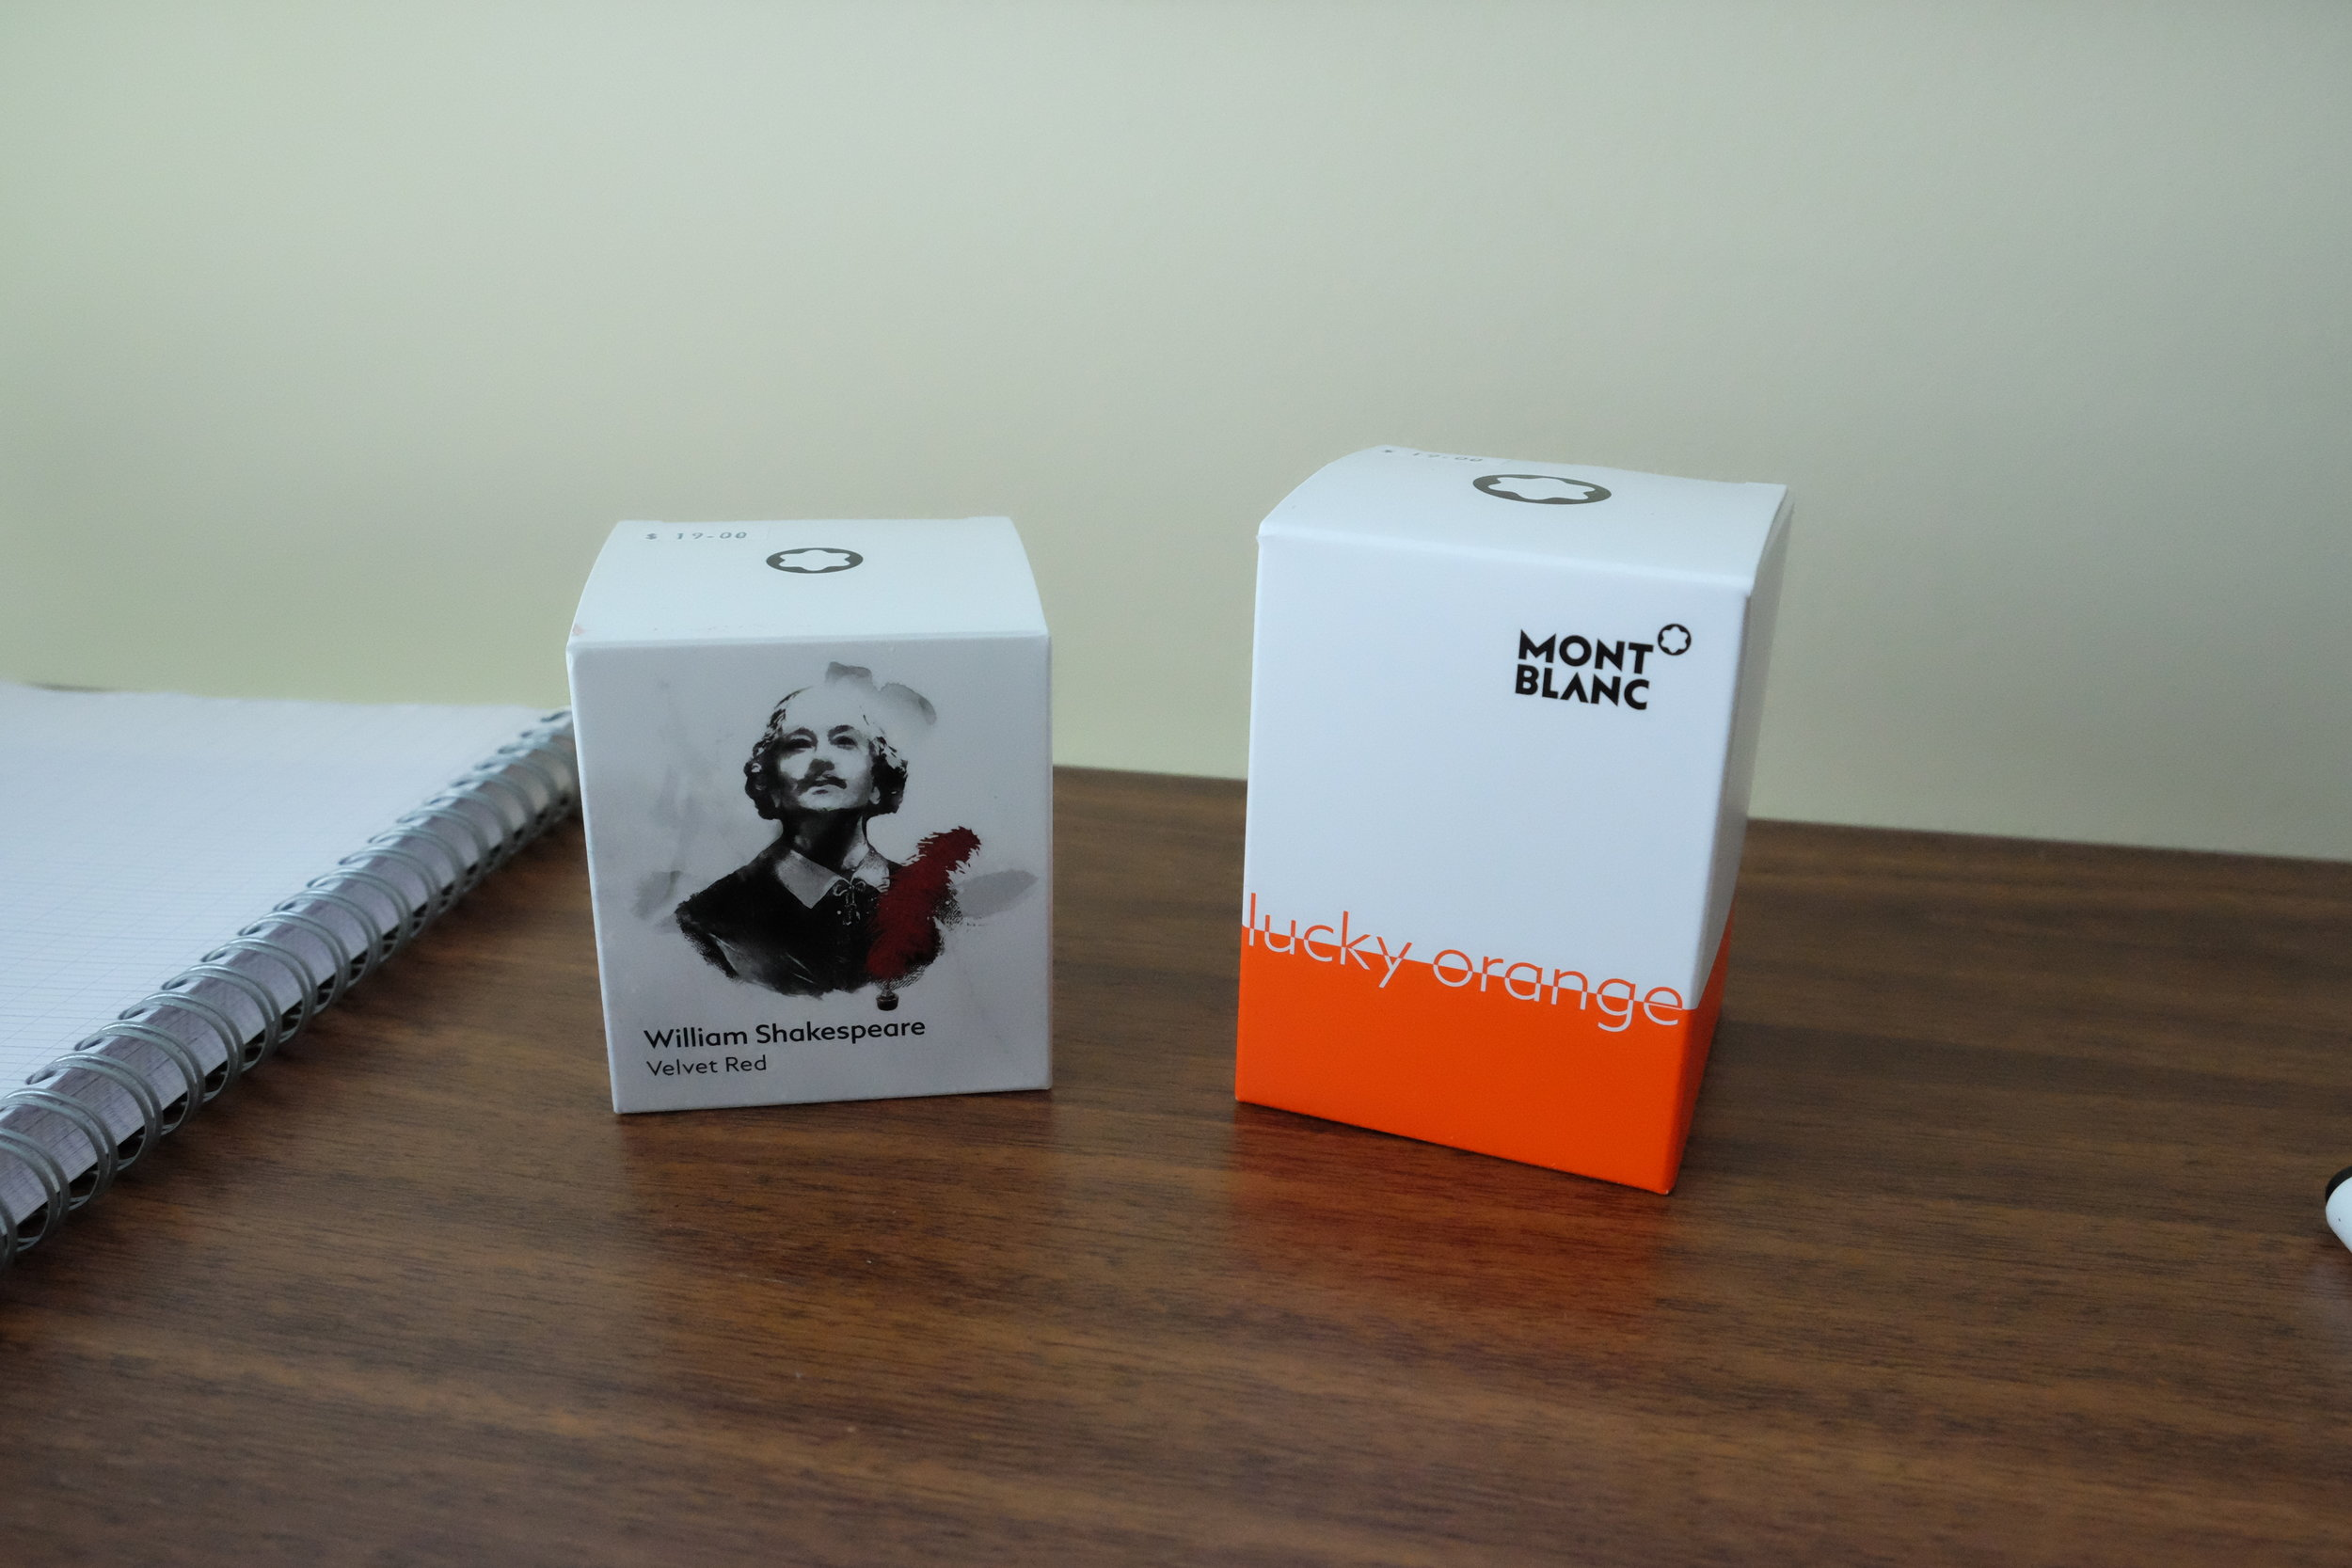 Montblanc's limited edition packaging is always worth checking out, even if you don't keep boxes.